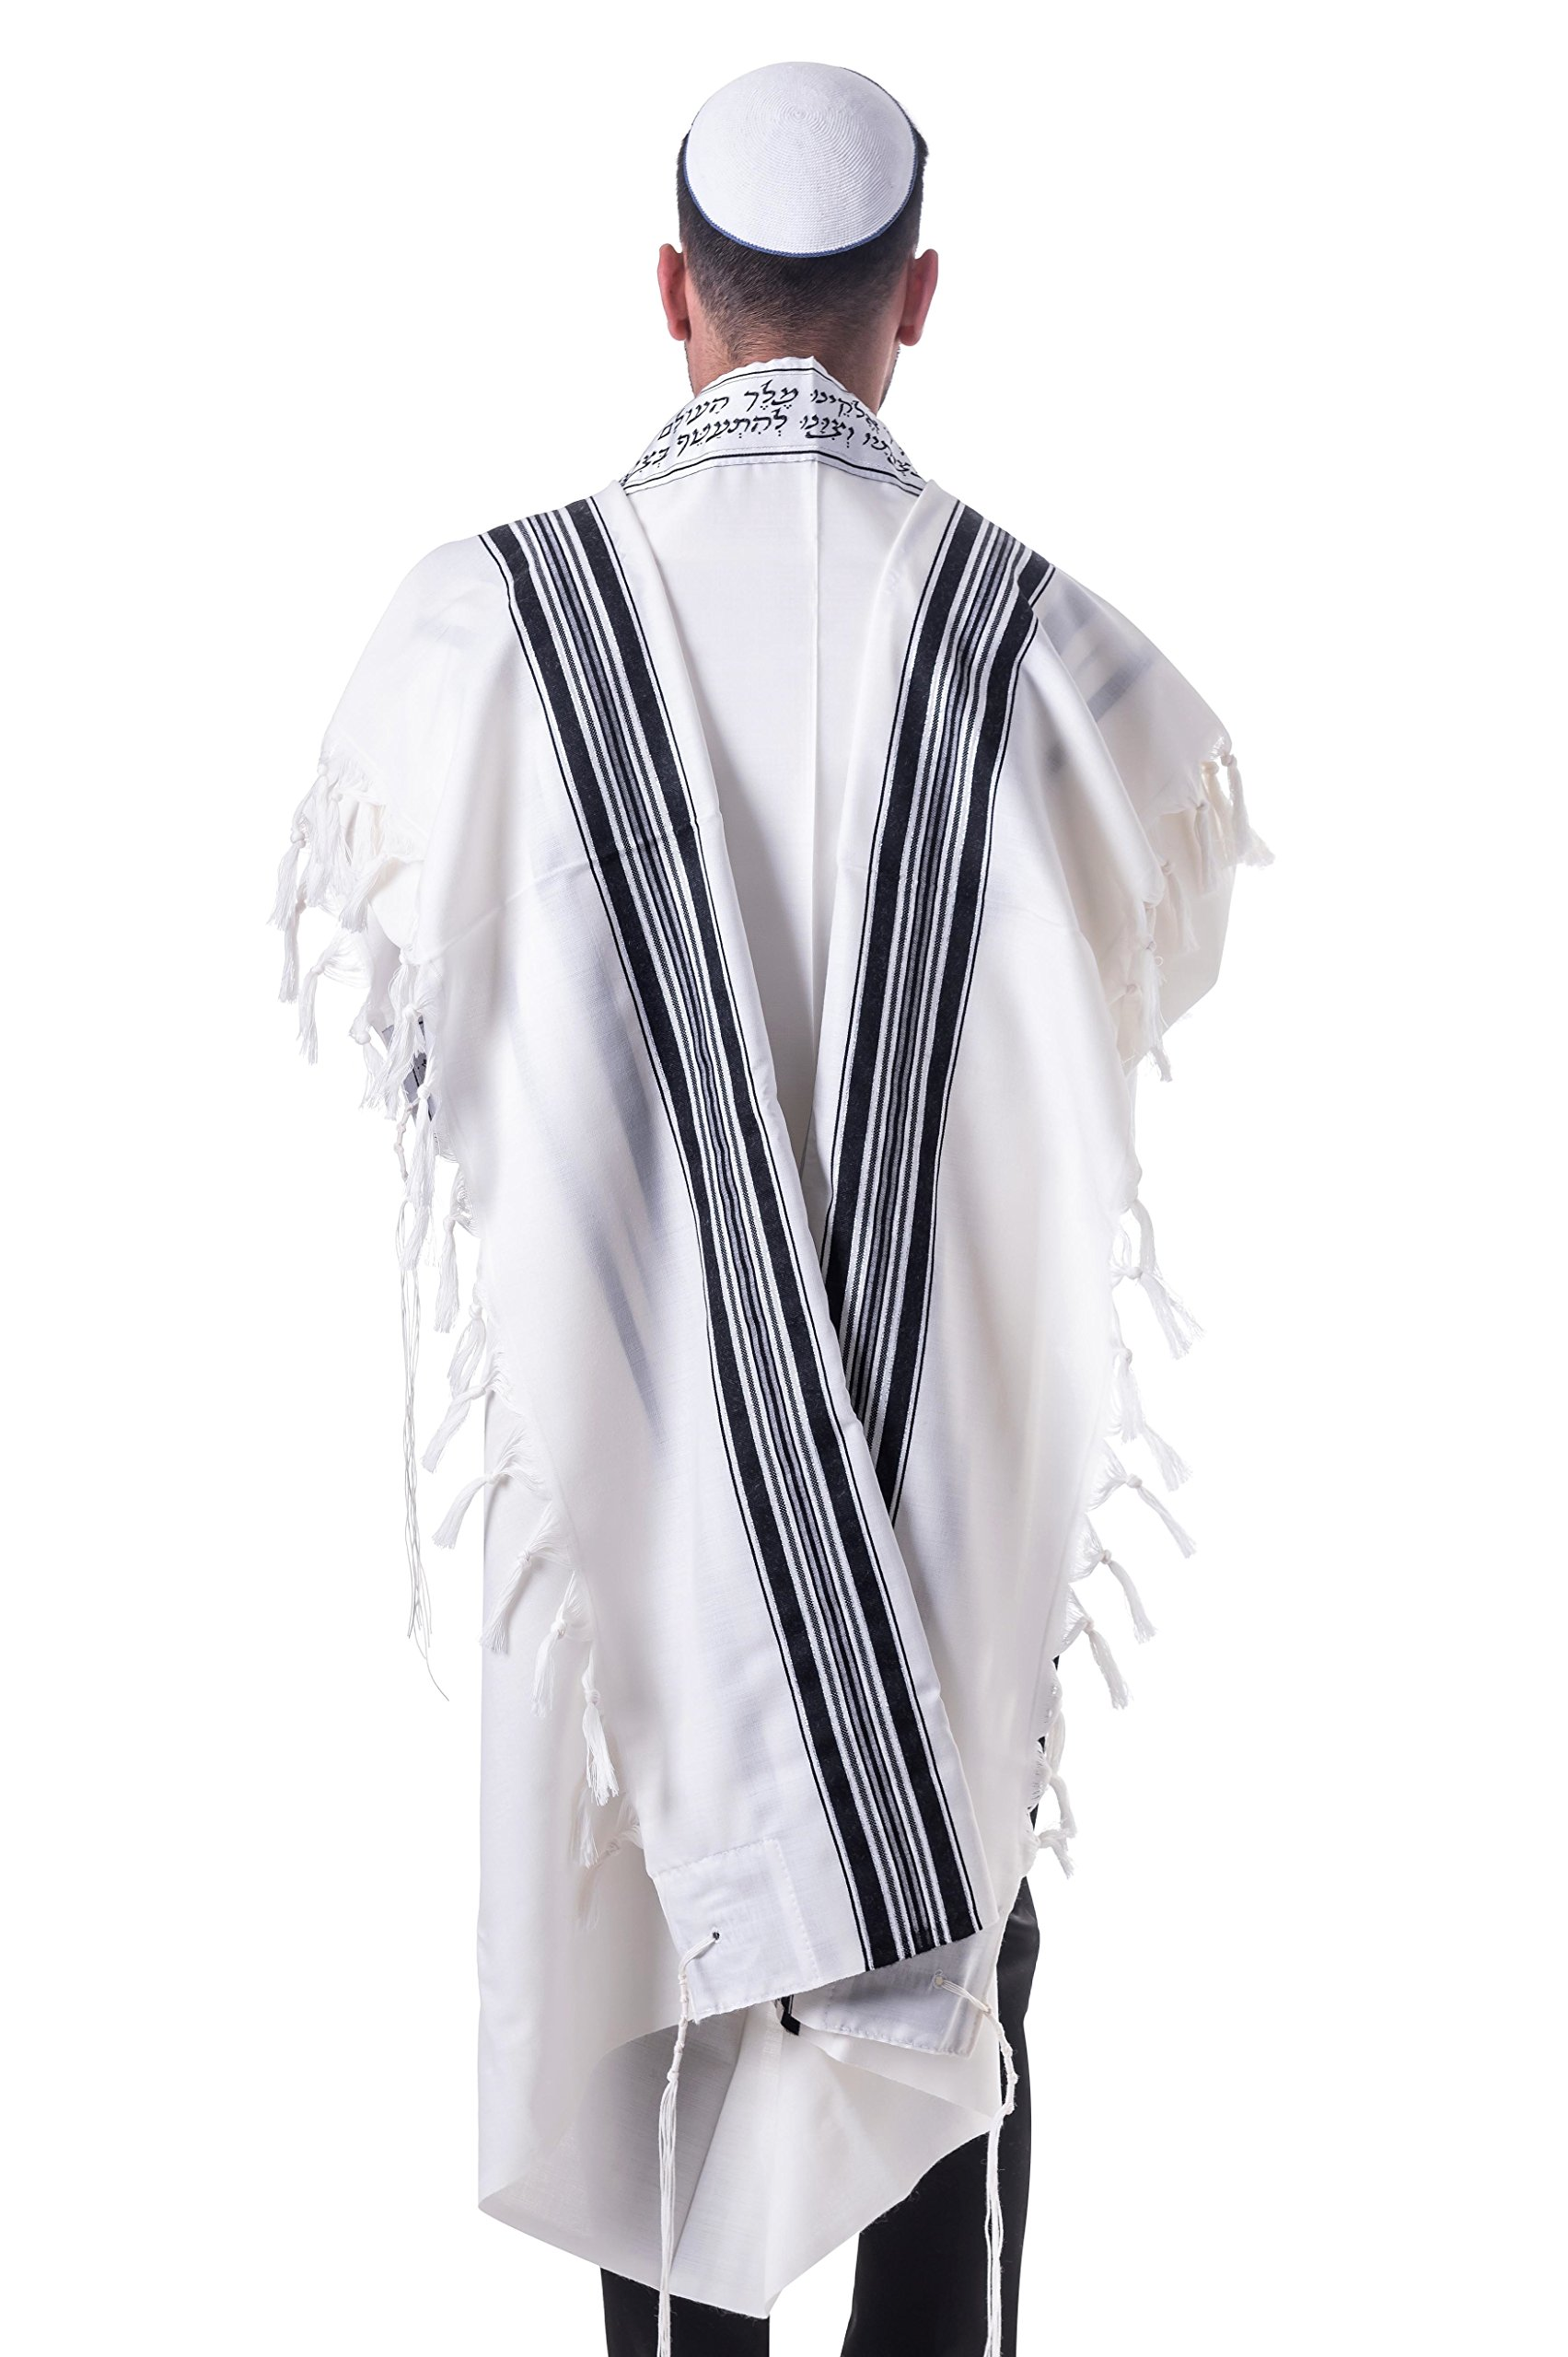 Black & Silver 100% Wool Kosher Tallit Prayer Shawl Made by Mishcan Hathelet (size 60 - (55 inches x 73 inches))